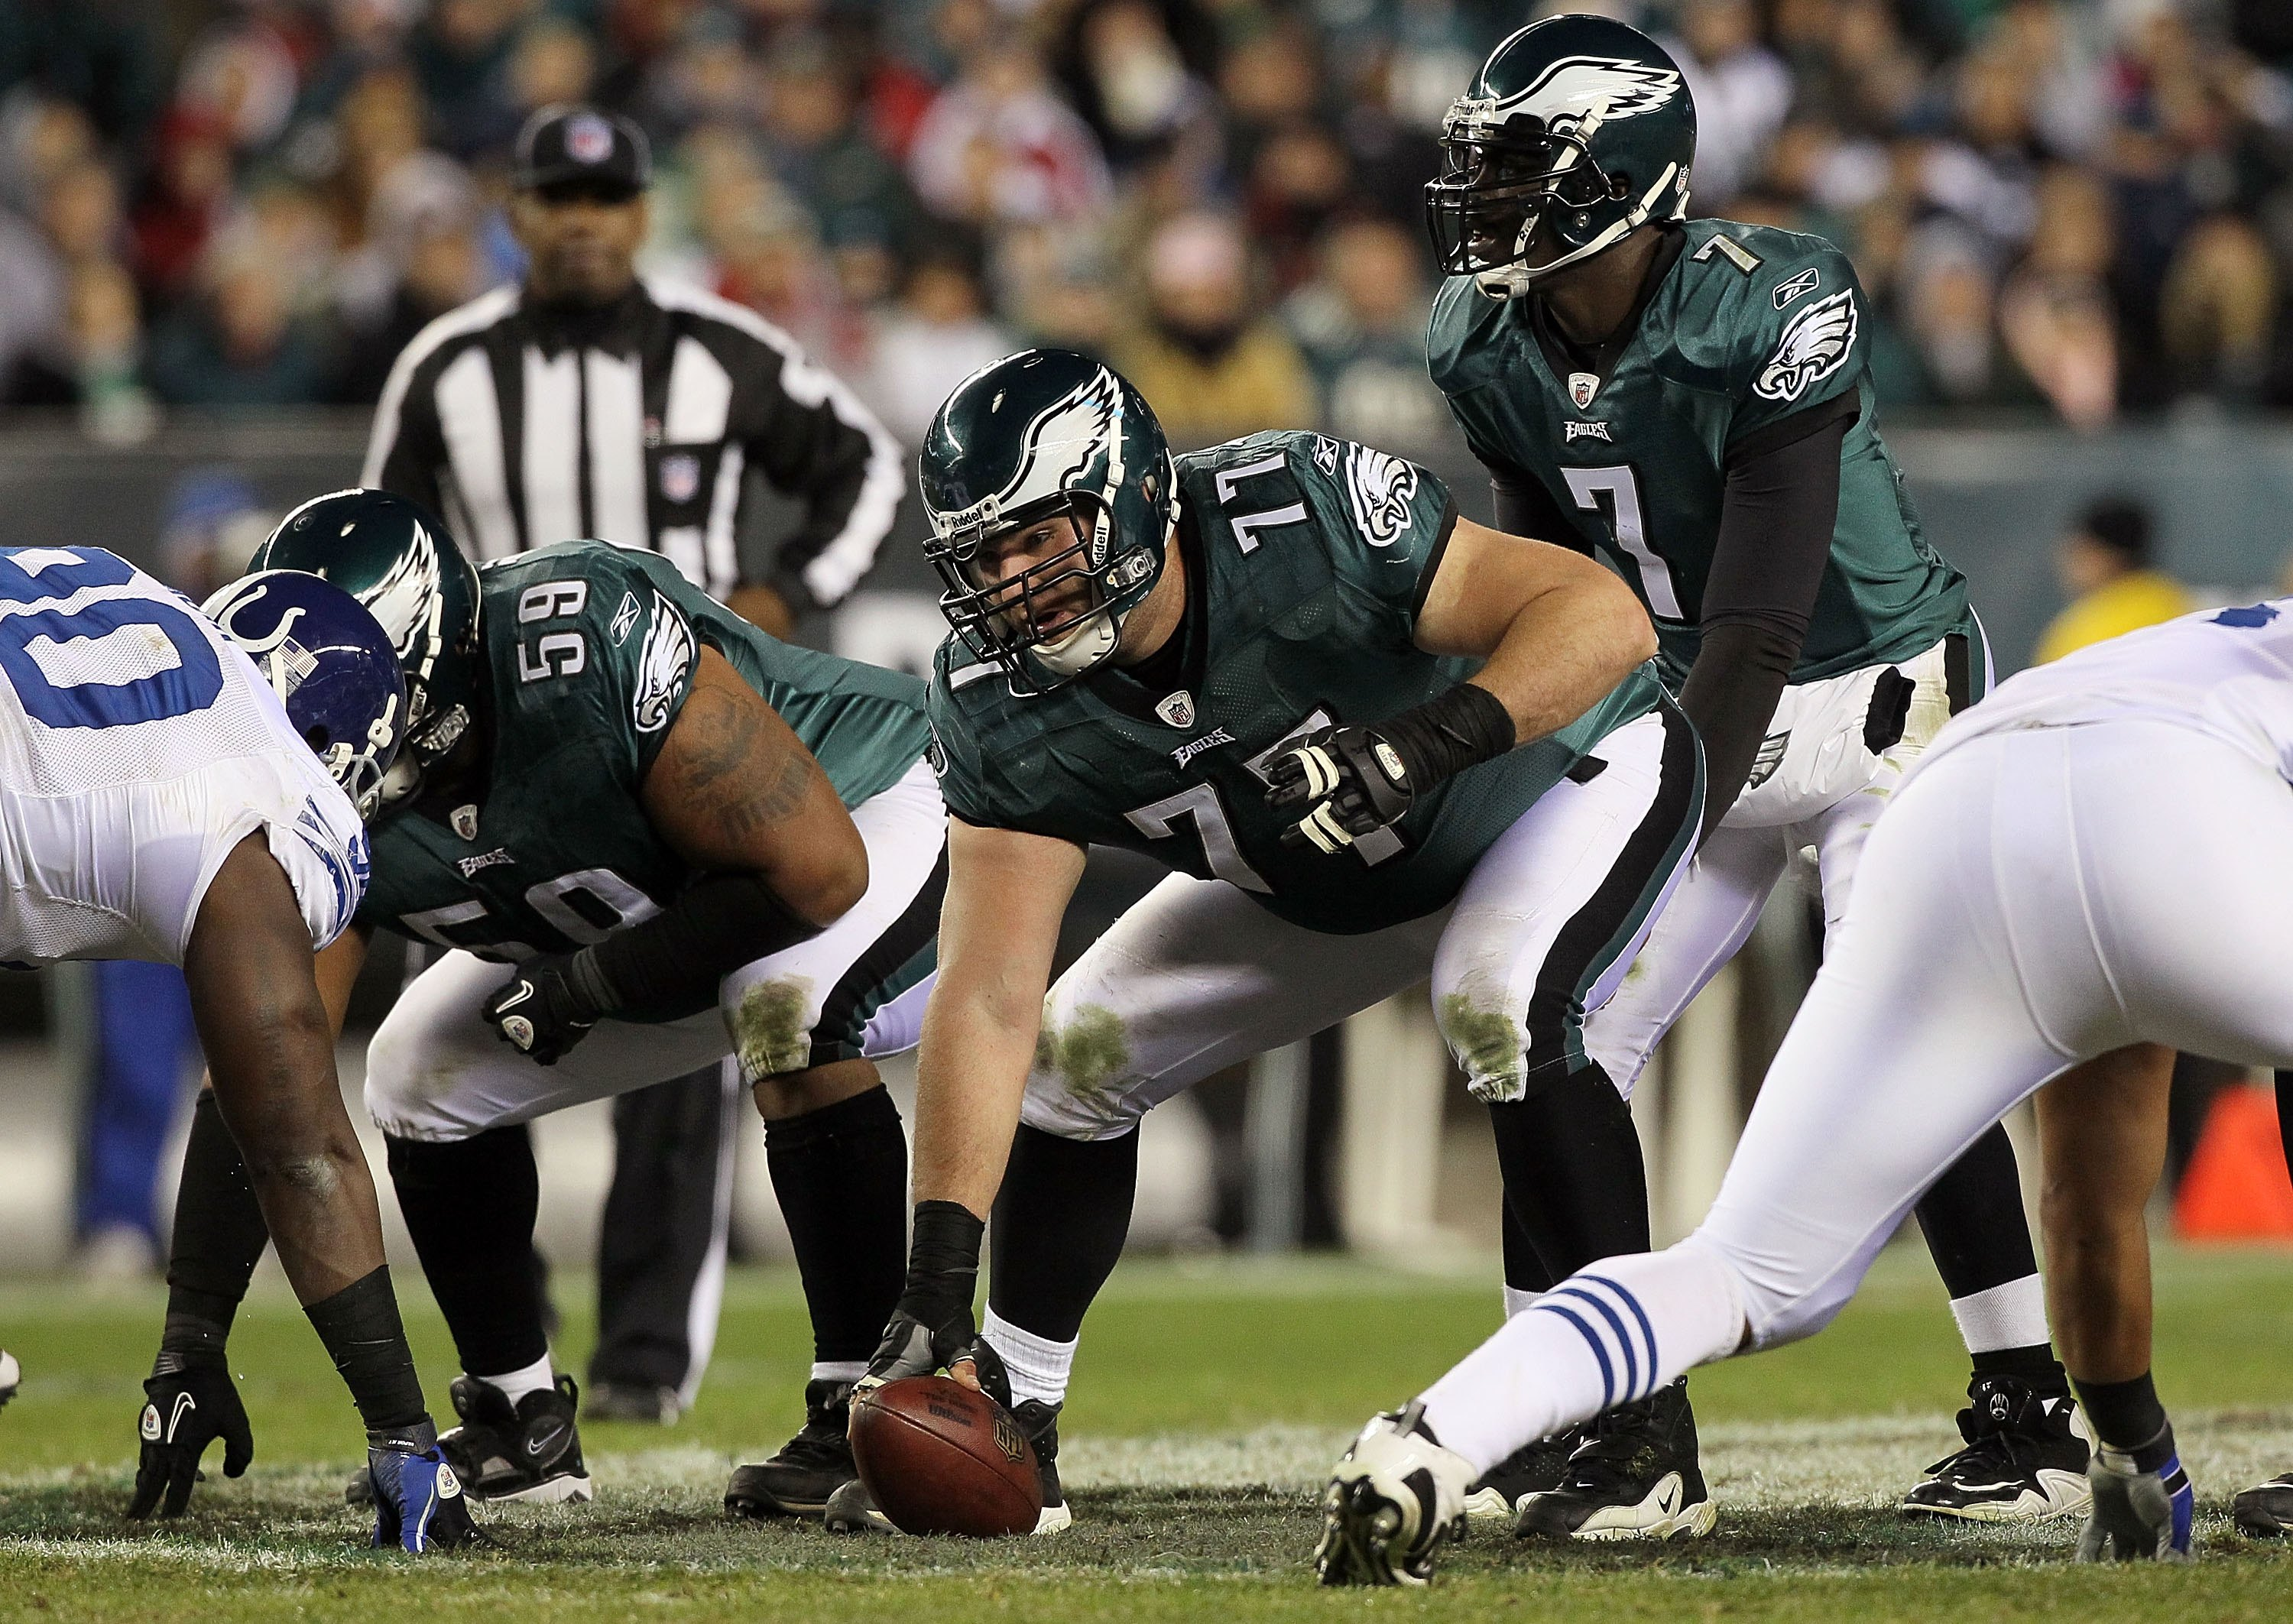 PHILADELPHIA - NOVEMBER 07:  Mike McGlynn #77 of the Philadelphia Eagles against the Indianapolis Colts on November 7, 2010 at Lincoln Financial Field in Philadelphia, Pennsylvania. The Eagles defeated the Colts 26-24.  (Photo by Jim McIsaac/Getty Images)